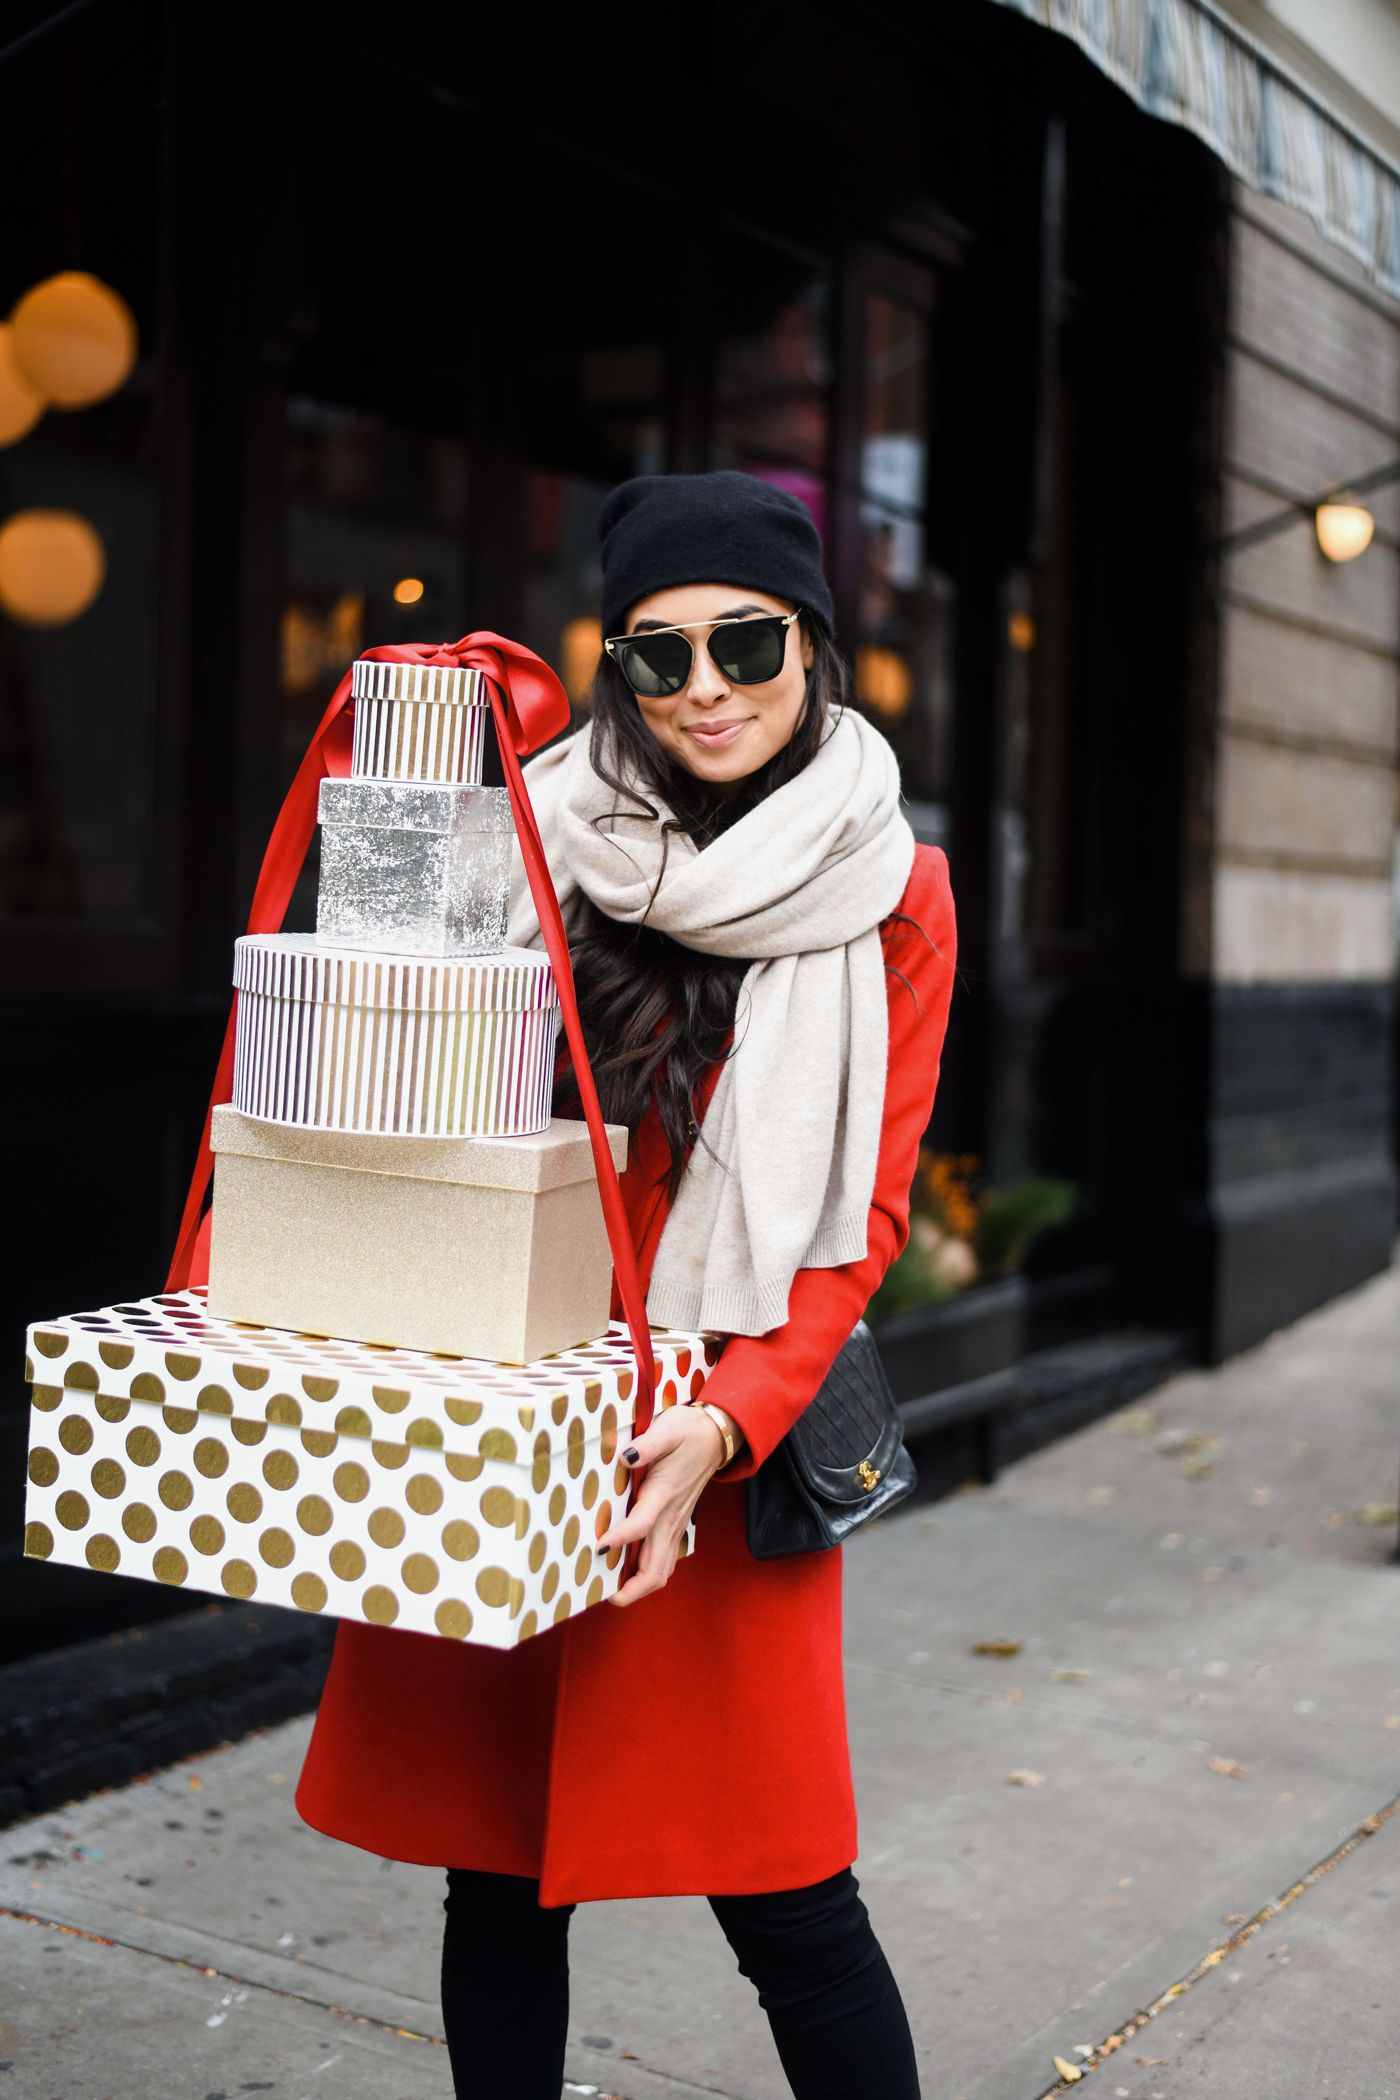 2018 Nordstrom Holiday Gift Guide | Holiday gift guide ...